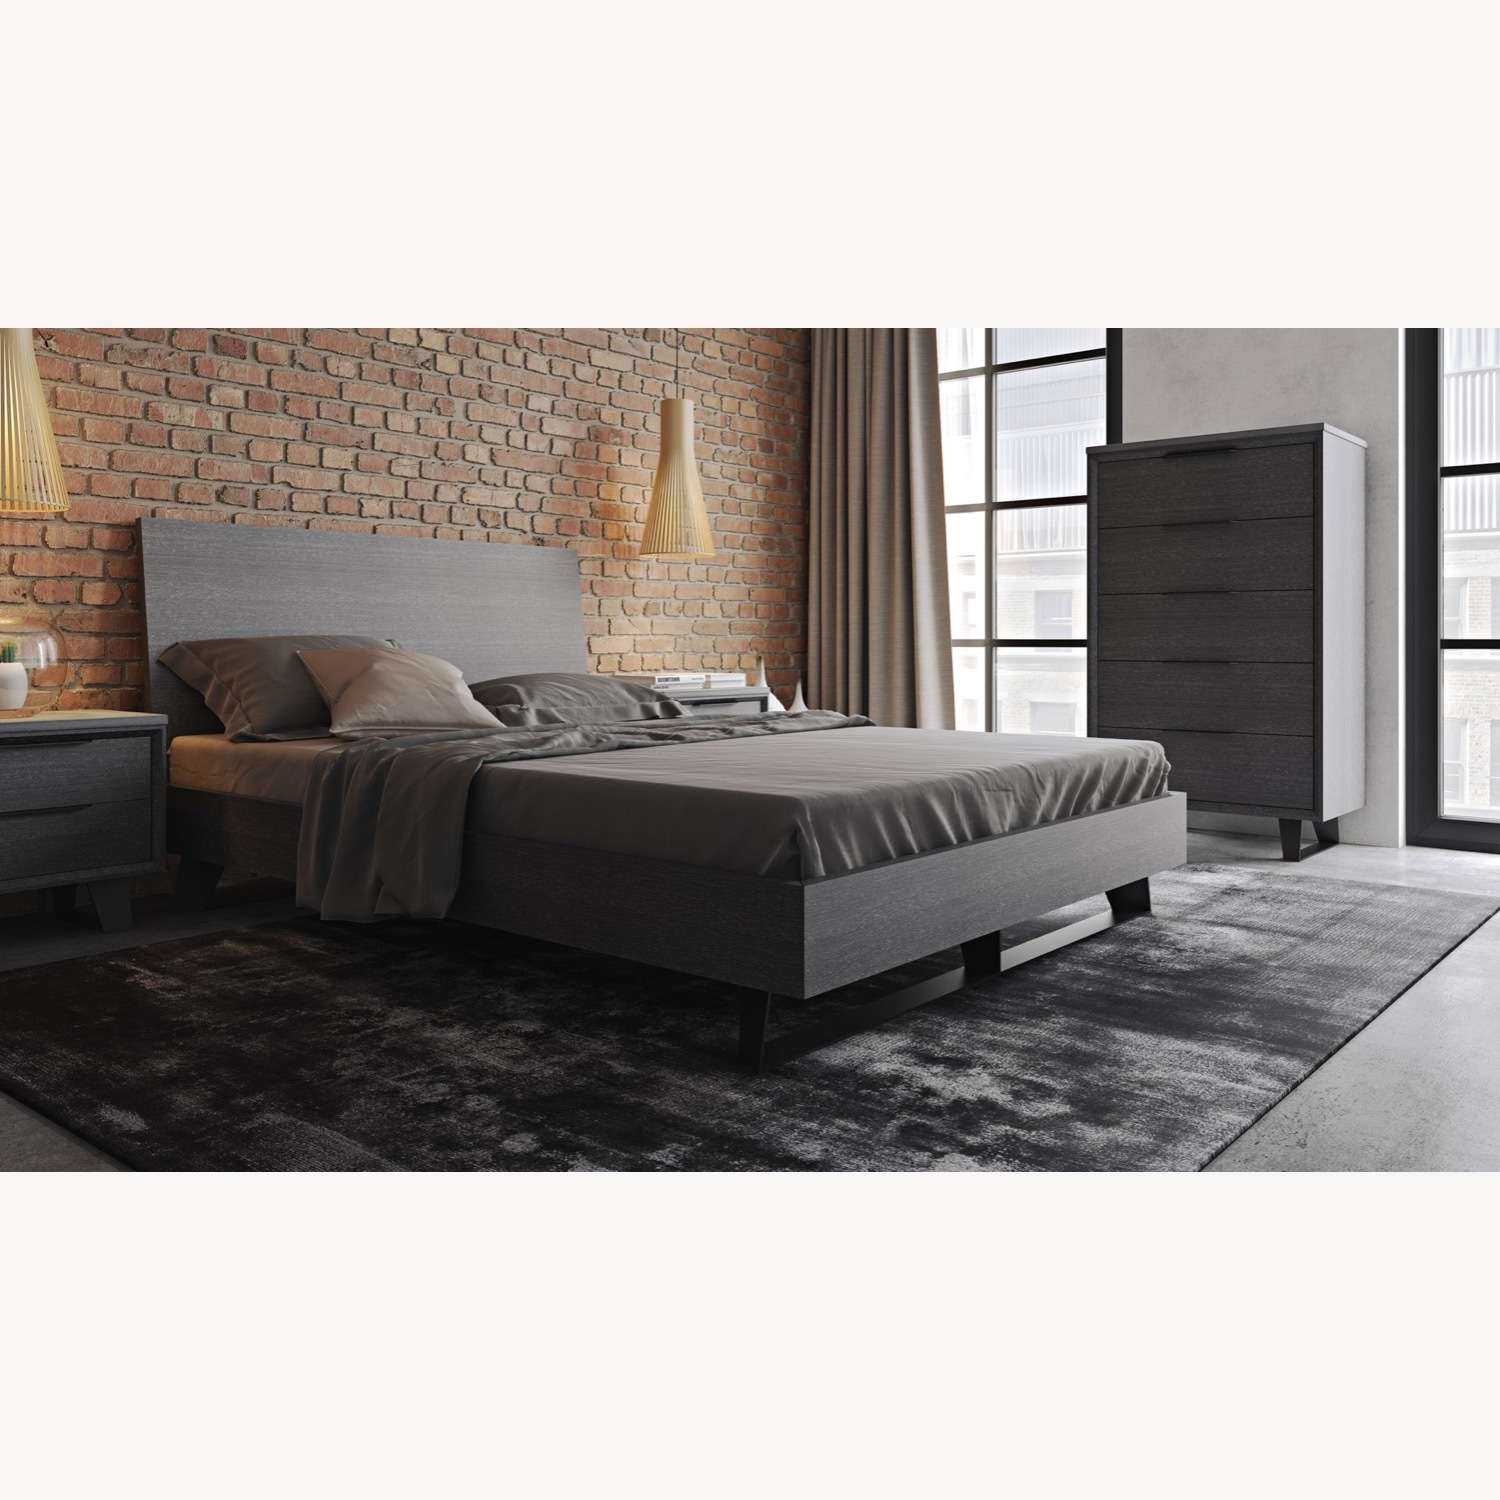 Amsterdam Queen Bed Frame - image-1